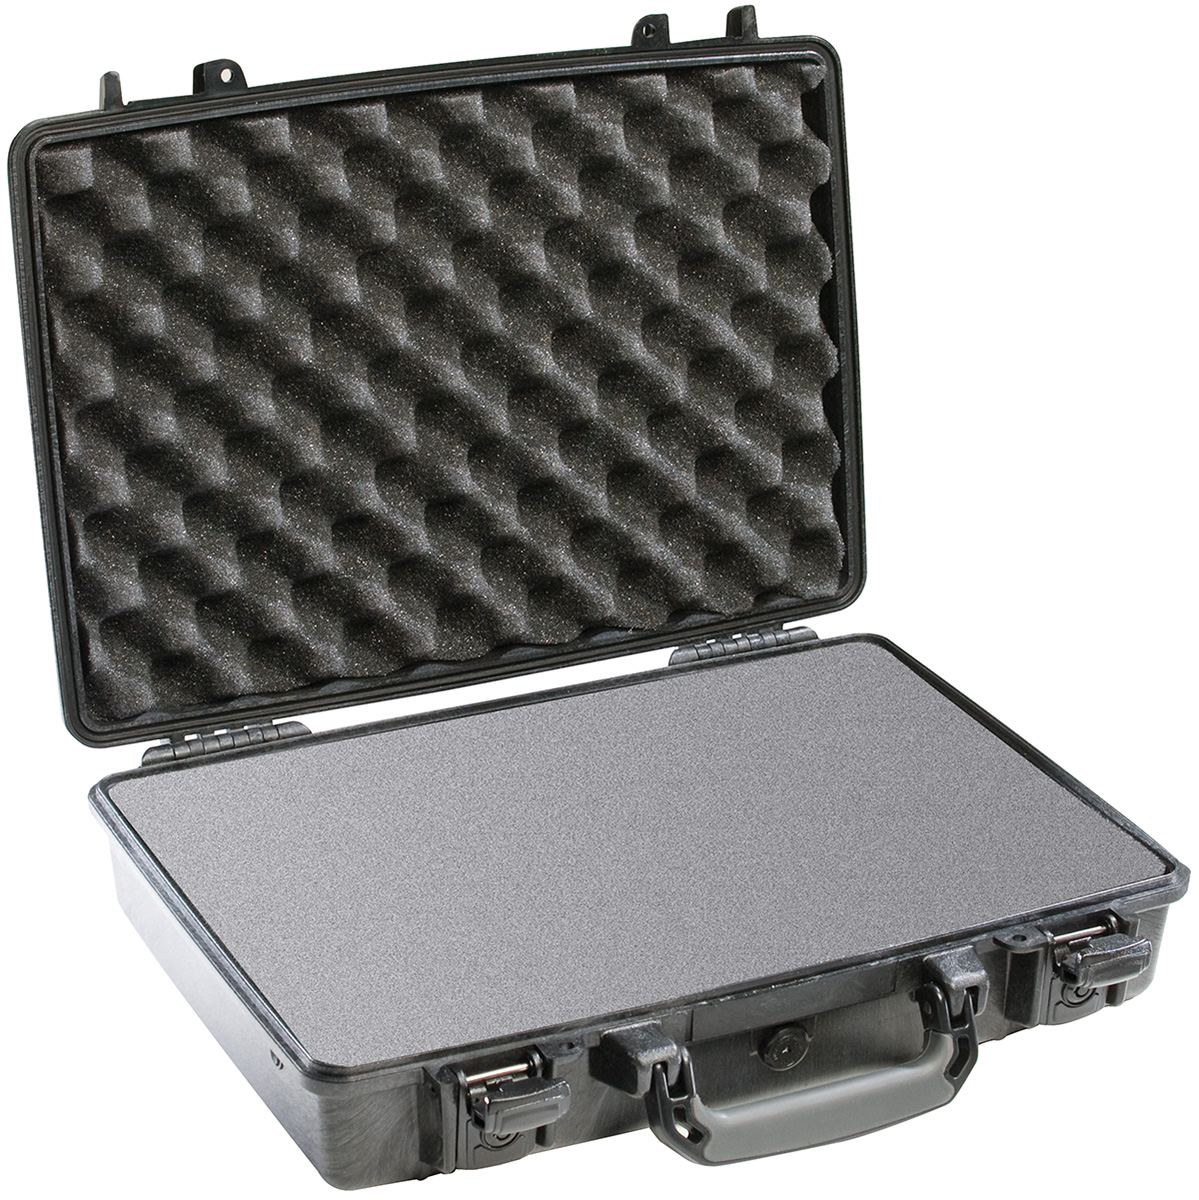 pelican peli products 1470 locking case protective laptop briefcase